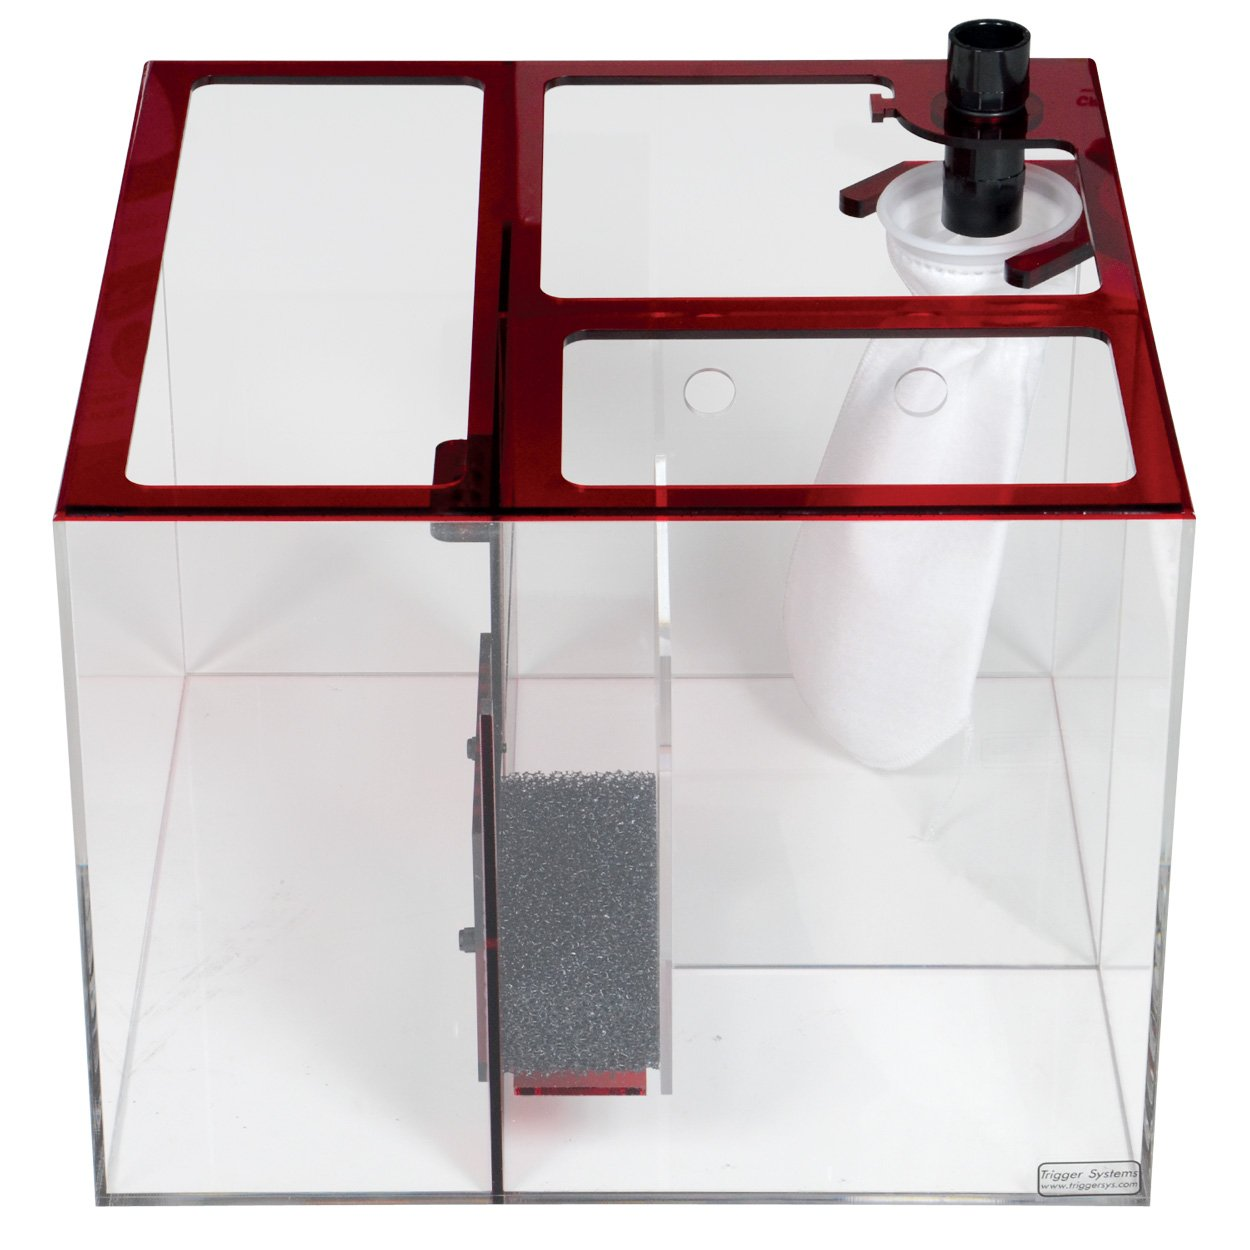 Trigger Systems 4430 Ruby Cube Sump